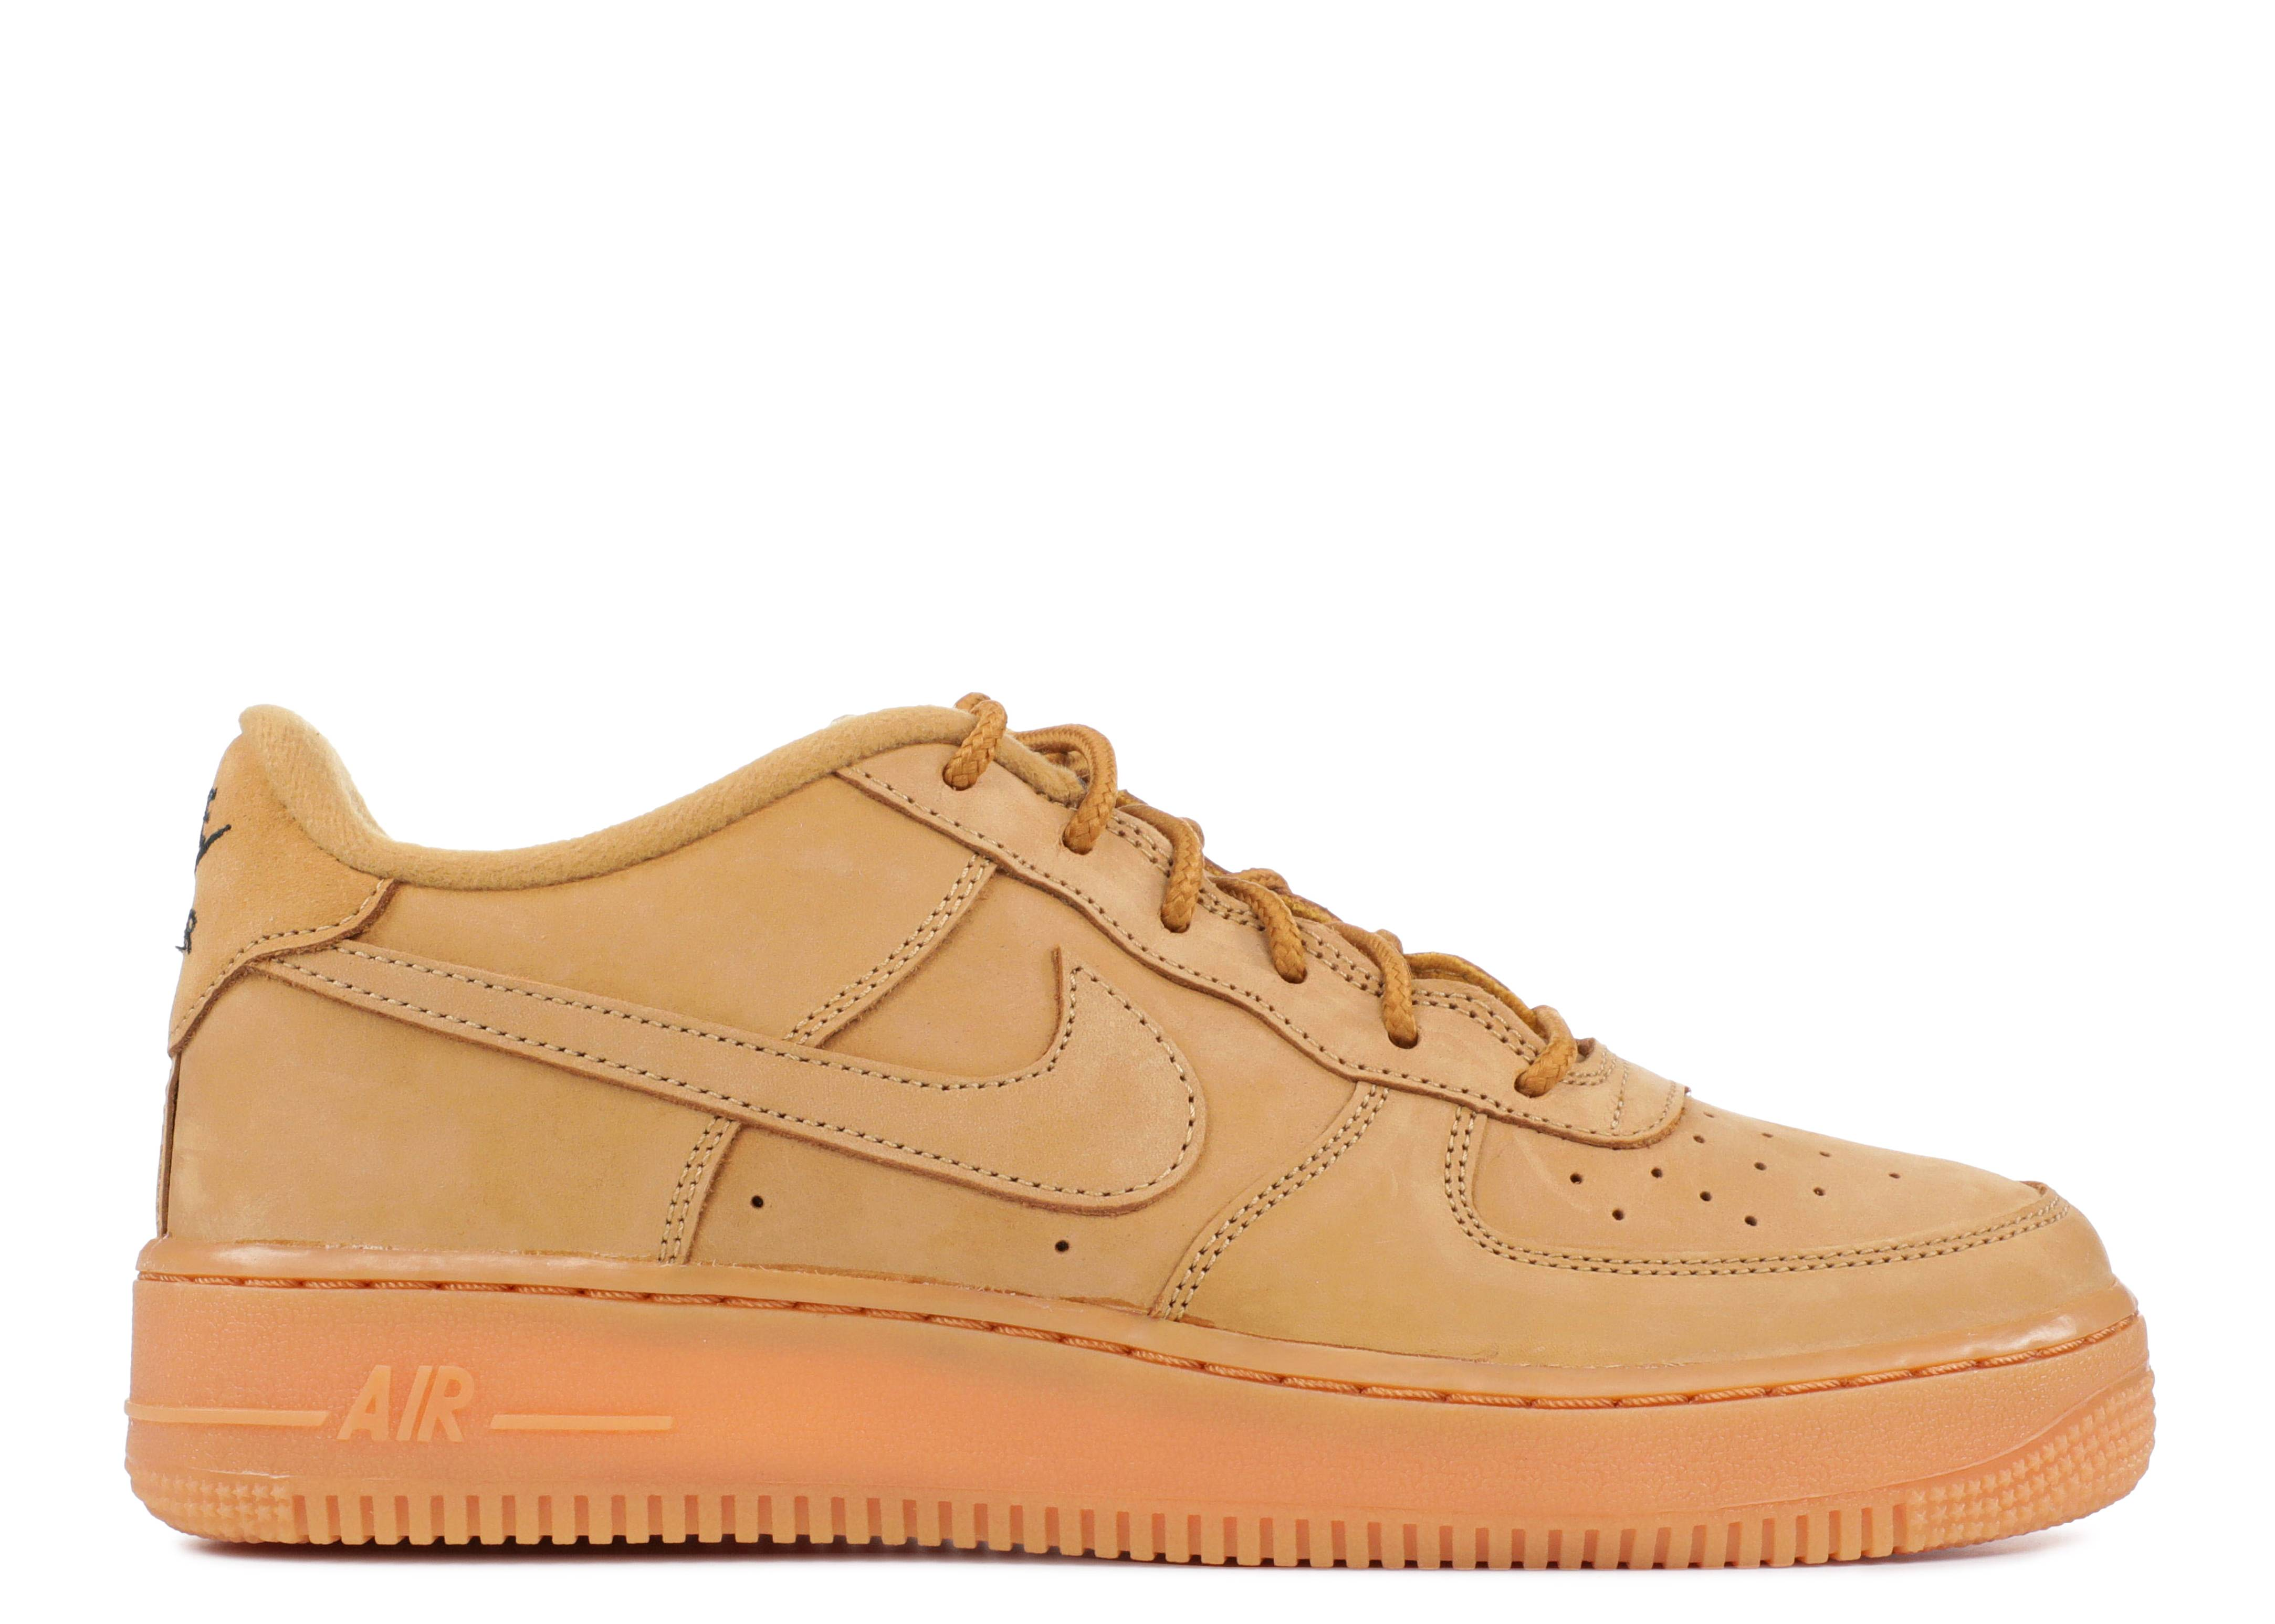 Nike Air Force 1 Mid Wheat Flax Brown Premium Quality Size